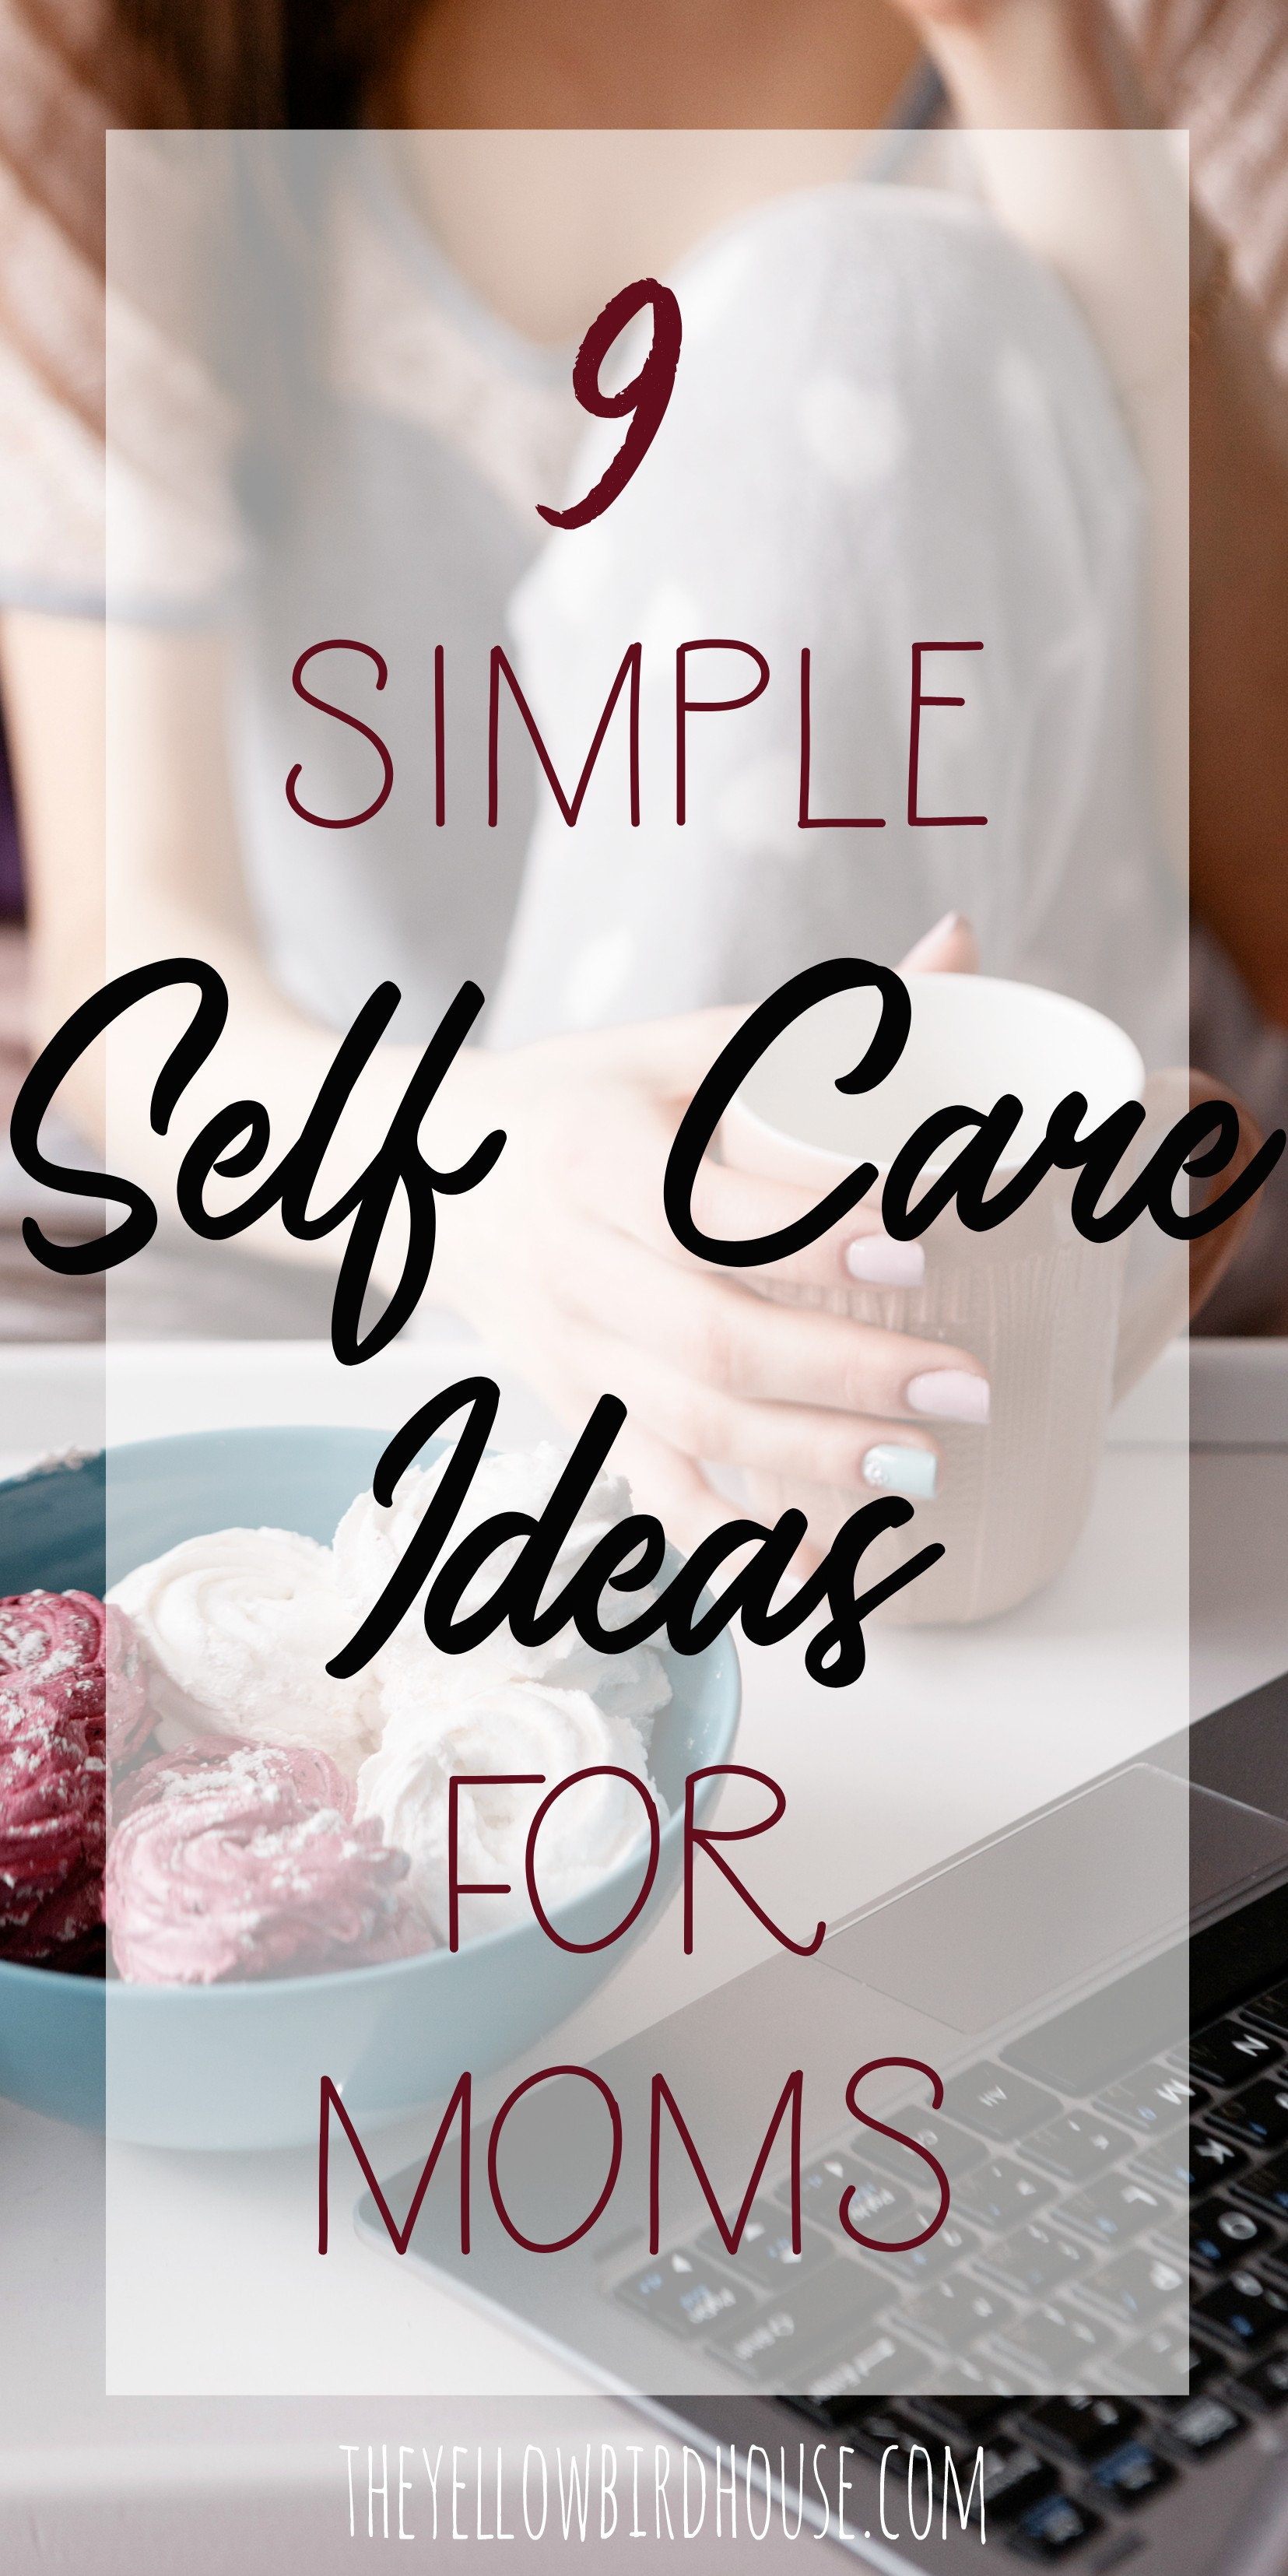 As moms, we are busy and we are tired and we hardly ever take time for ourselves. It's hard to imagine finding any time to incorporate self care into our busy schedules. So here are 9 SIMPLE self care ideas to help you unwind and refuel so you can be your best self for your family. These self care ideas for moms will help put a little spring back in your step!